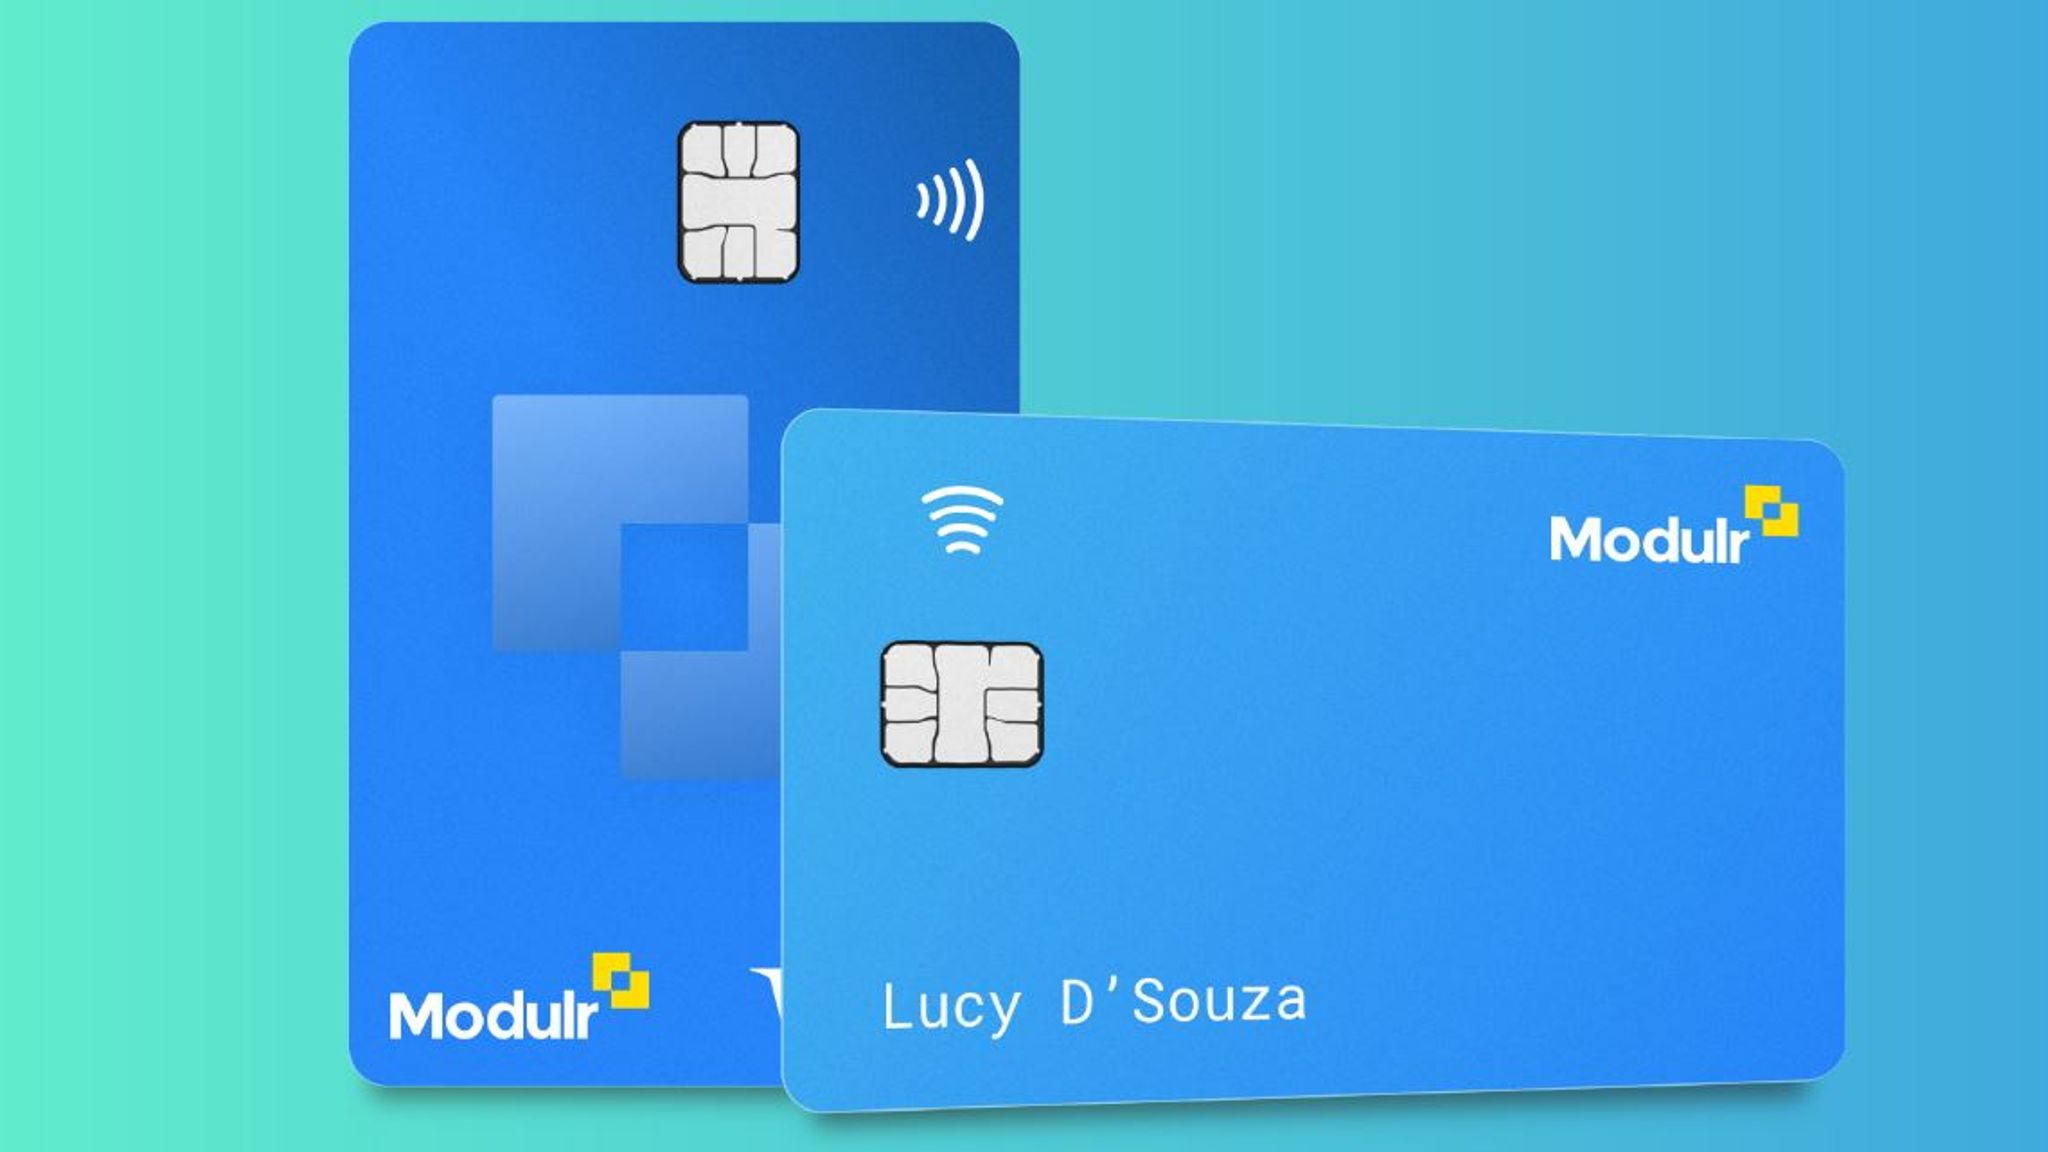 British fintech Modulr gets funding boost from PayPal arm